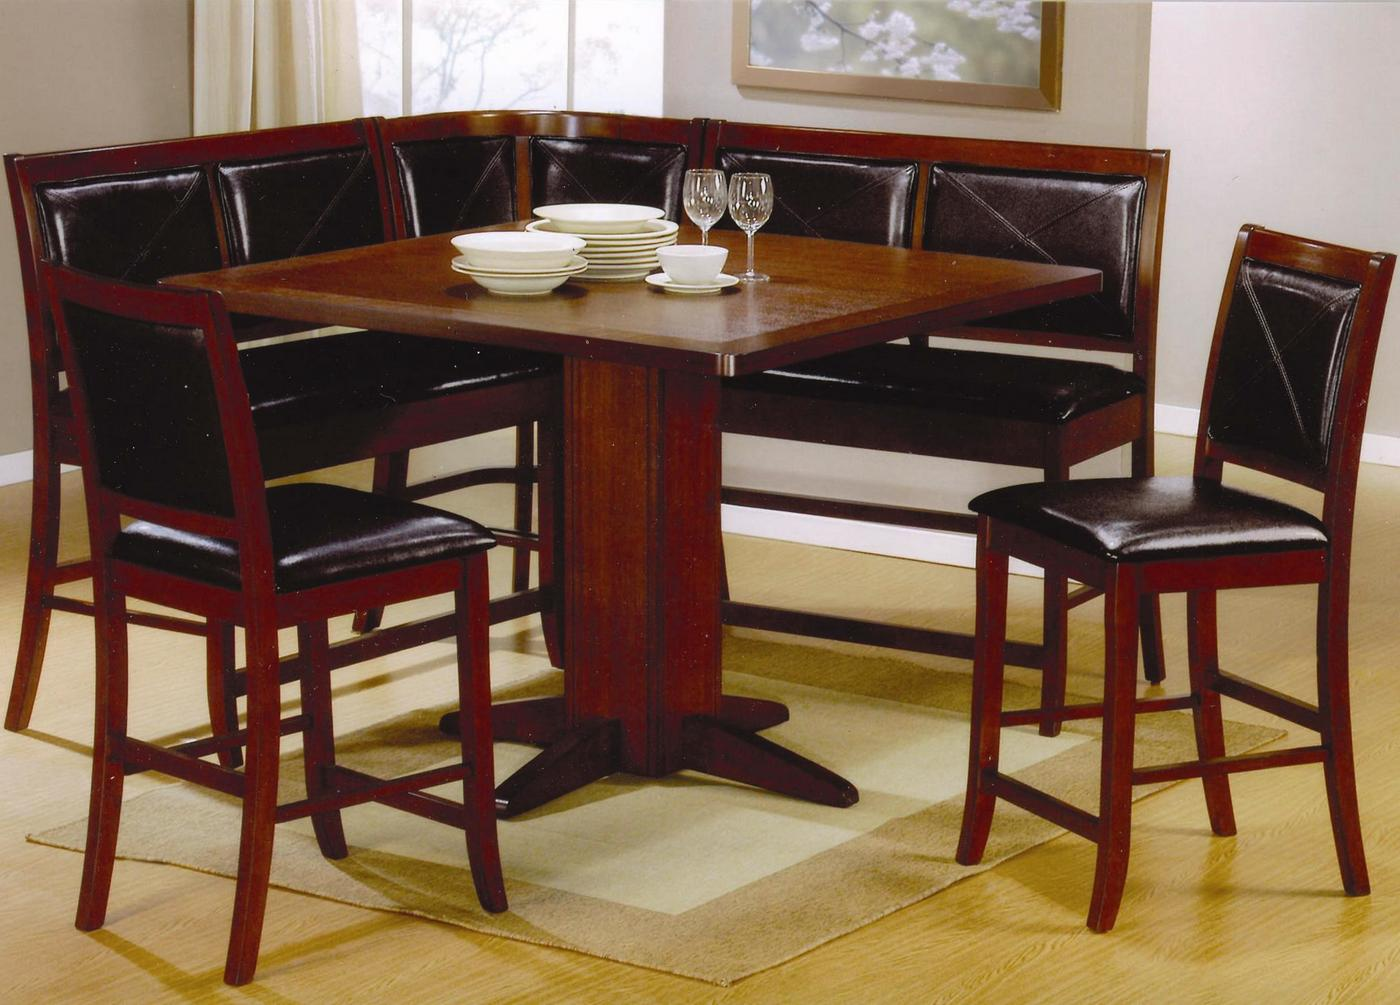 Corner Unit Dining Set Counter Height 101791 101792 Coaster